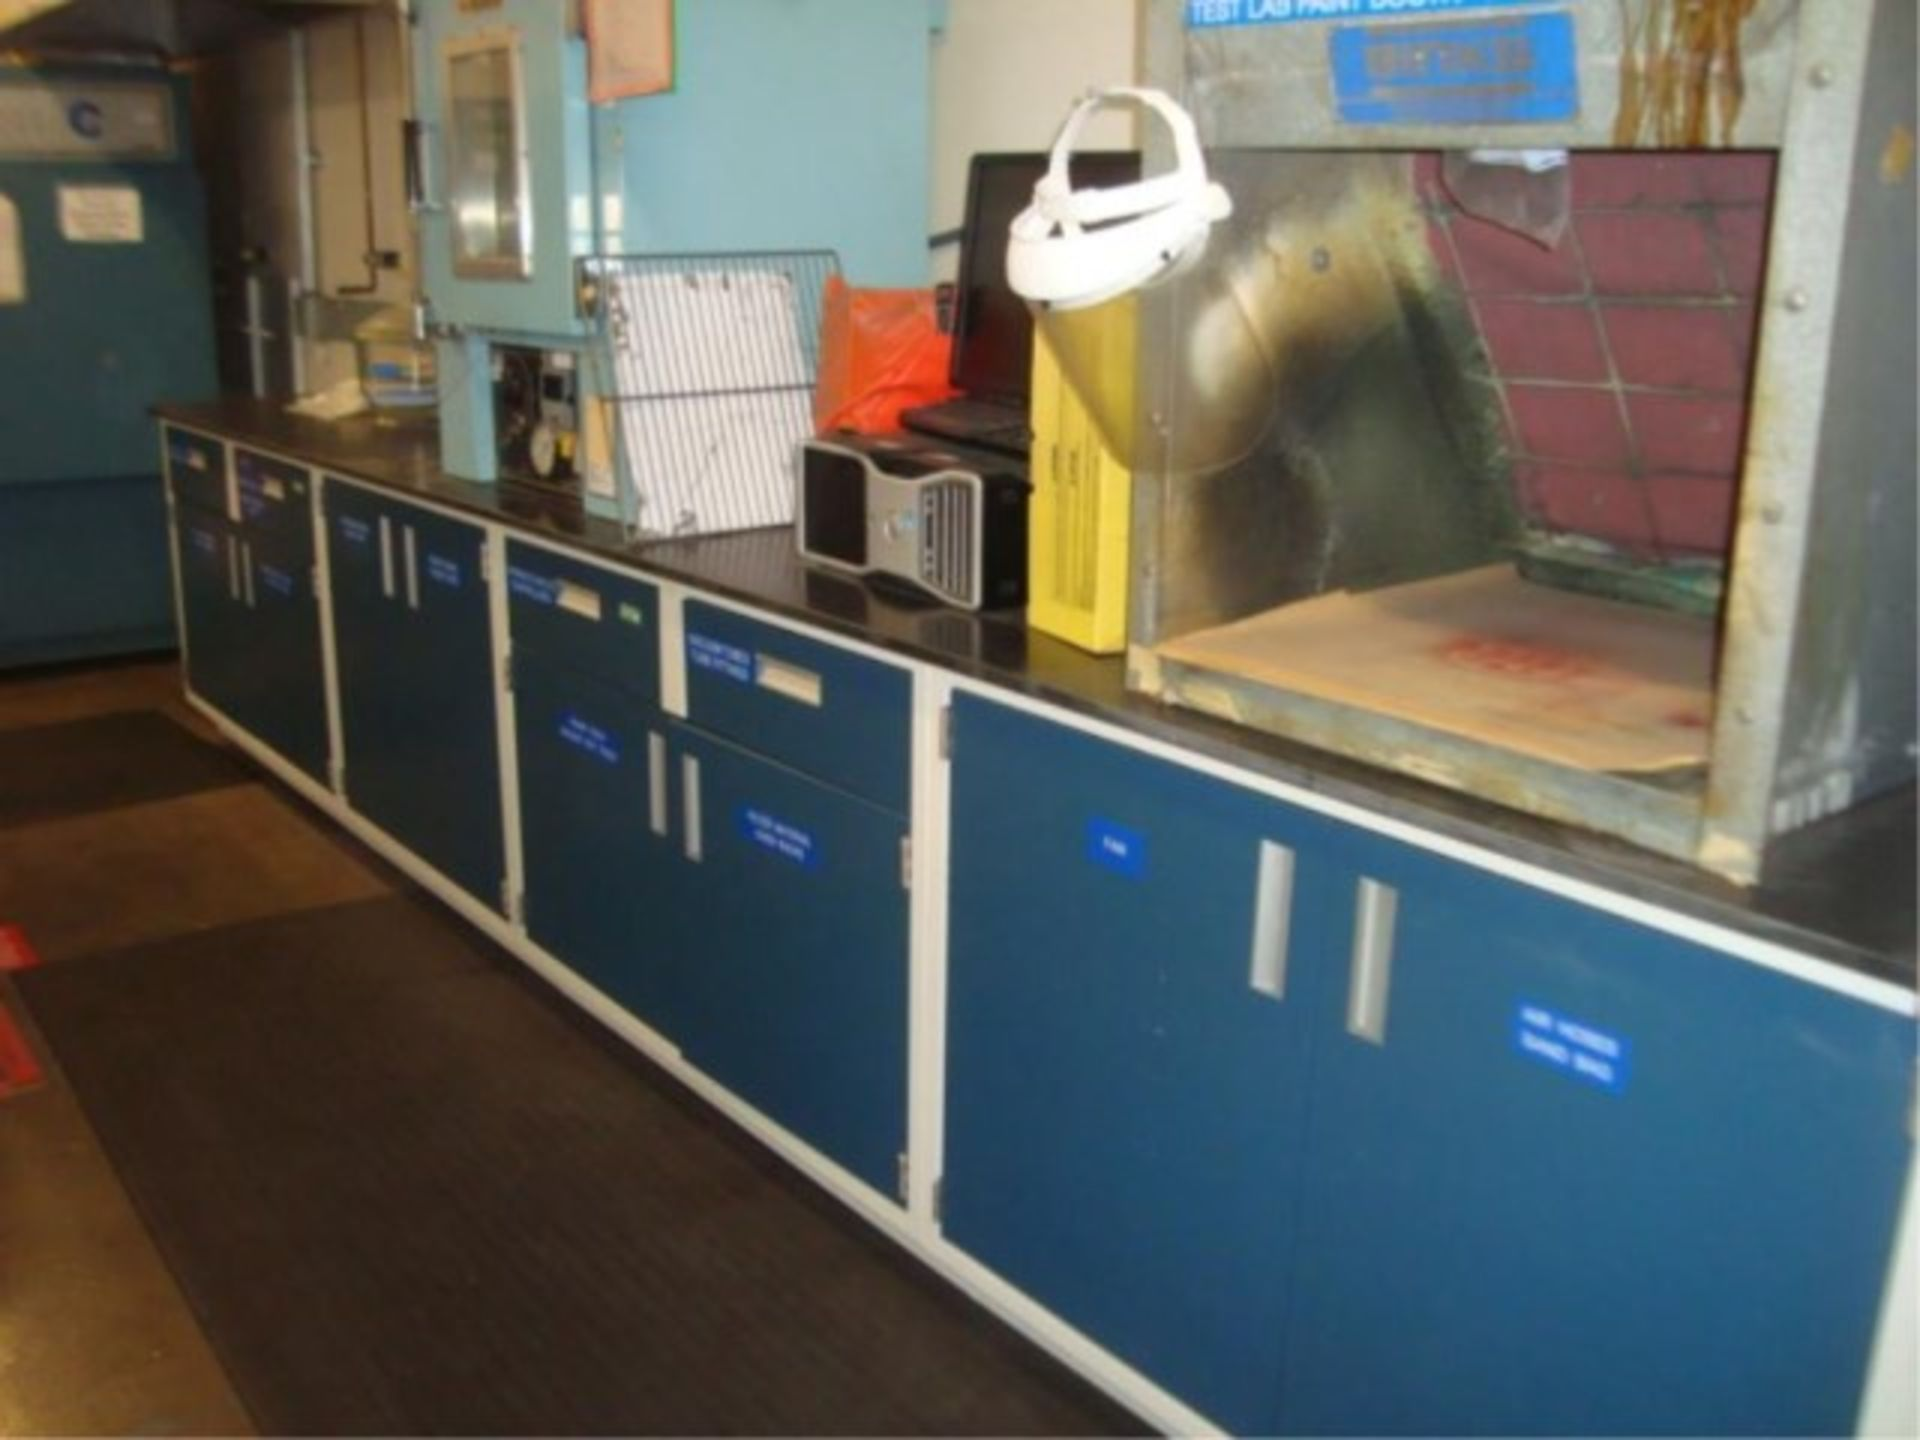 Lot 103 - Corrosion Resistant Lab Counter/Cabinets